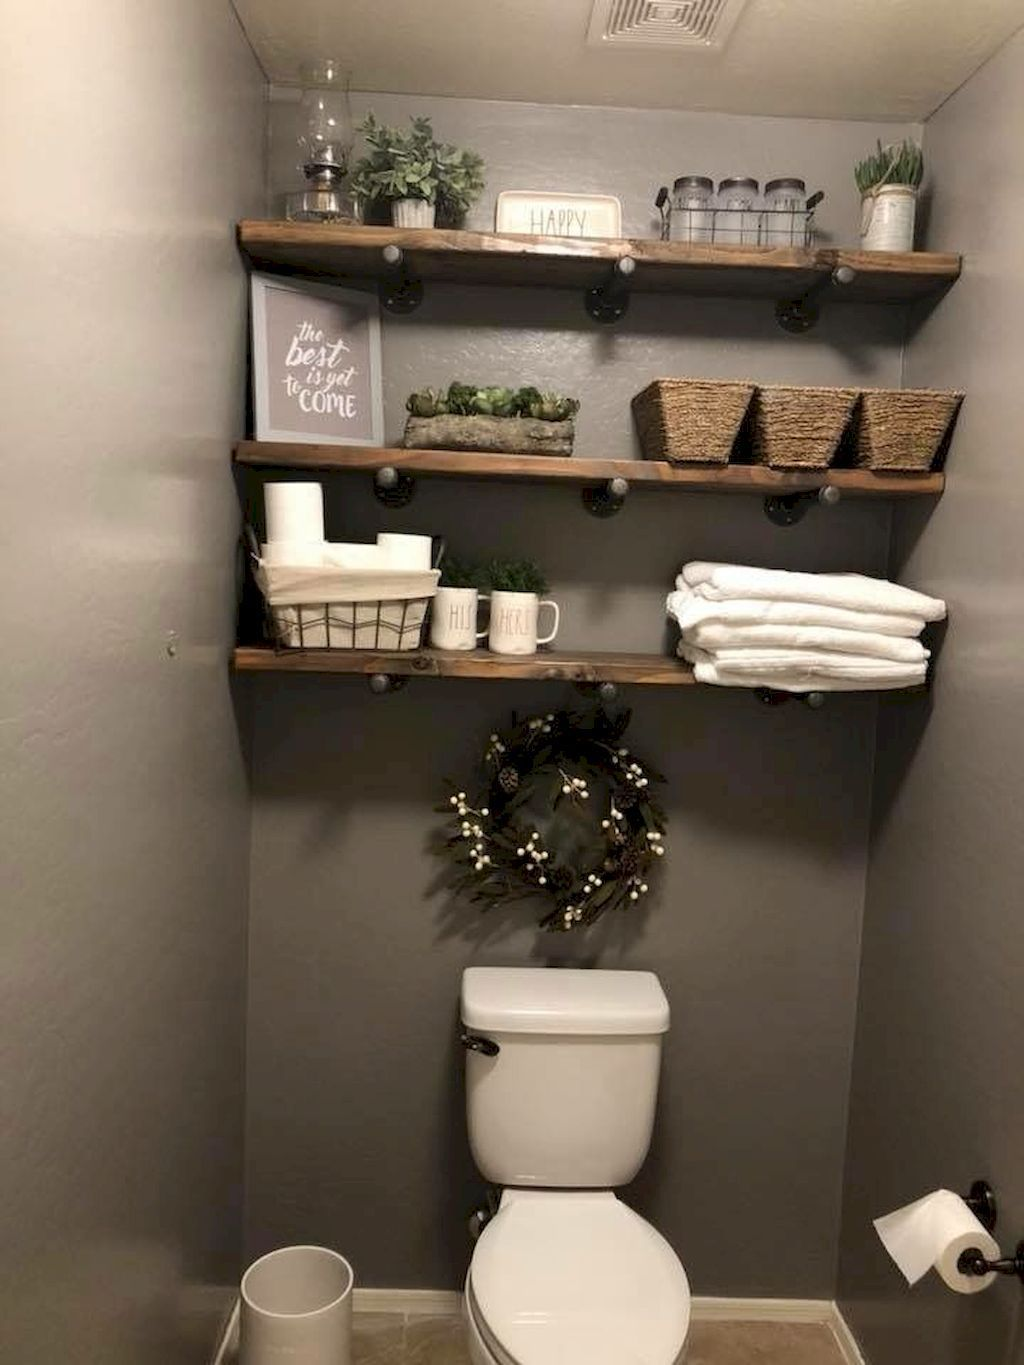 80 Affordable Rustic Bathroom Storage Ideas Decoradeas Rustic Bathroom Designs Small Bathroom Decor Farmhouse Bathroom Decor